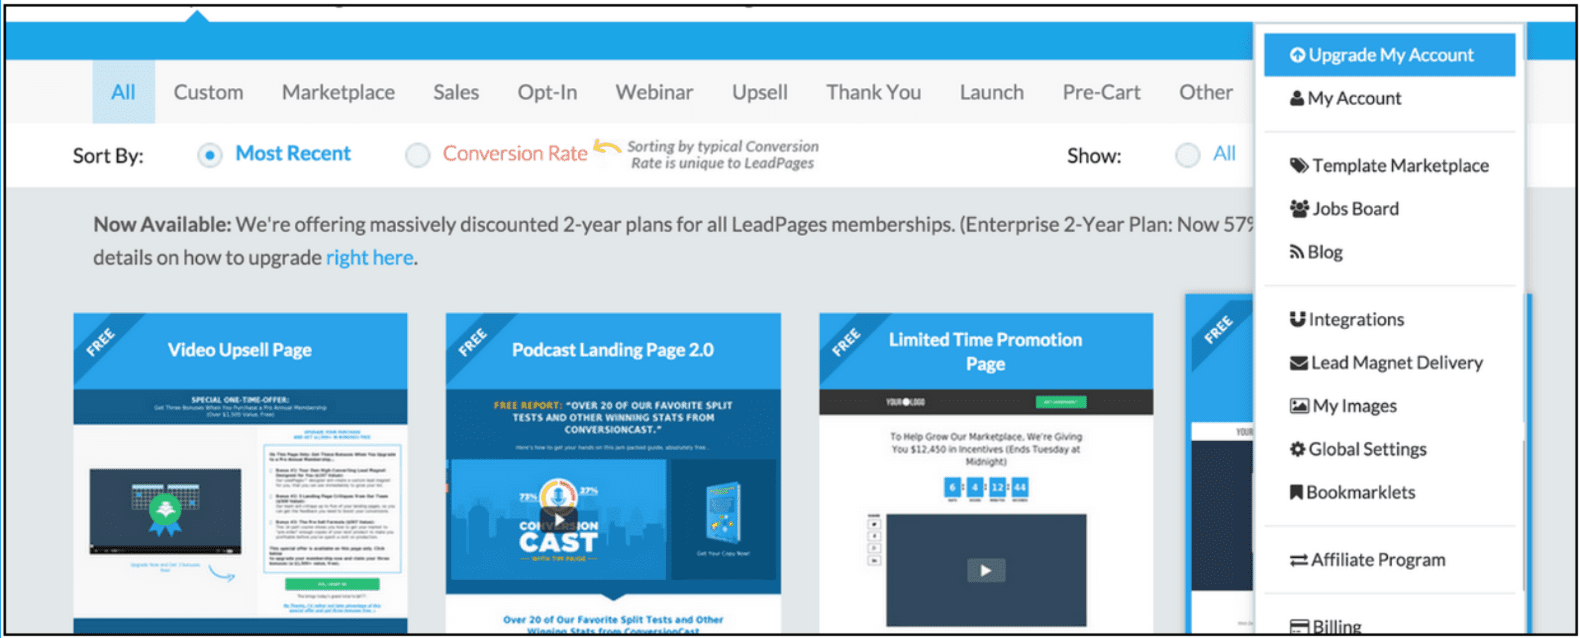 Get two free LeadPages Pro Sub-accounts When You Become a LeadPages Enterprise Member Before This Saturday at Midnight.